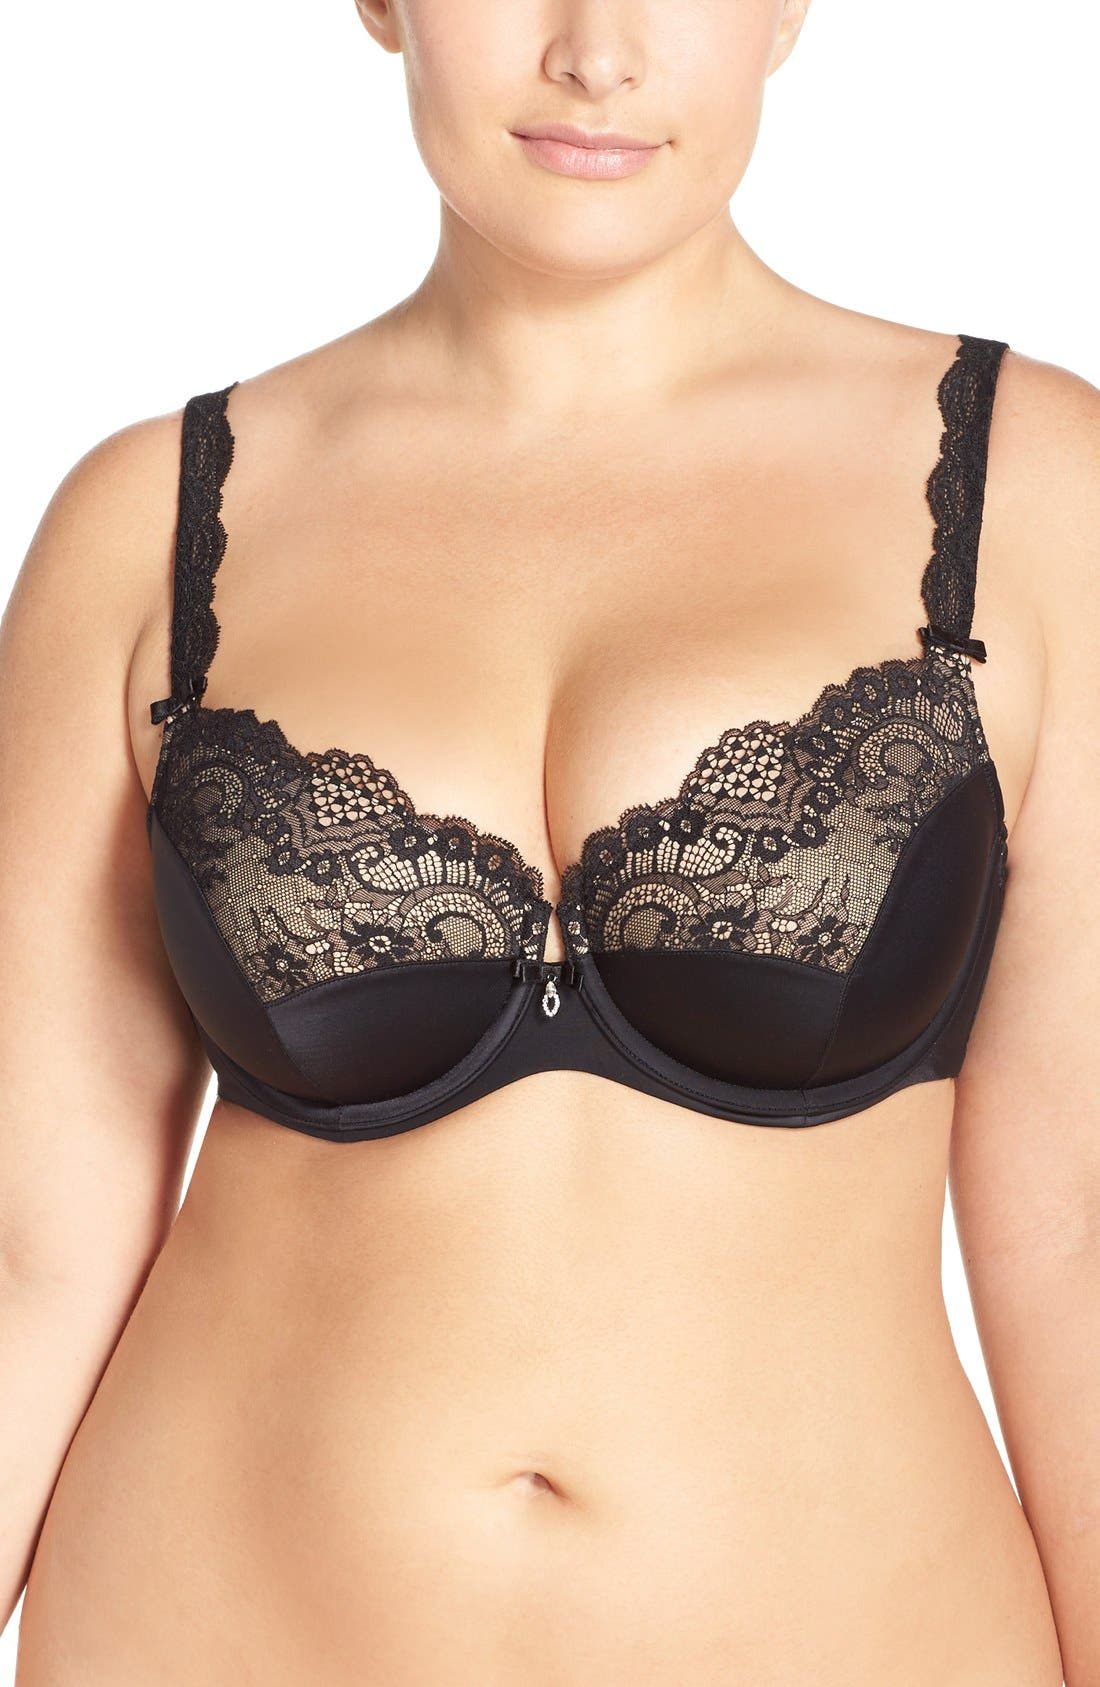 'Foxy' Lace Balconette Bra,                             Main thumbnail 1, color,                             BLACK